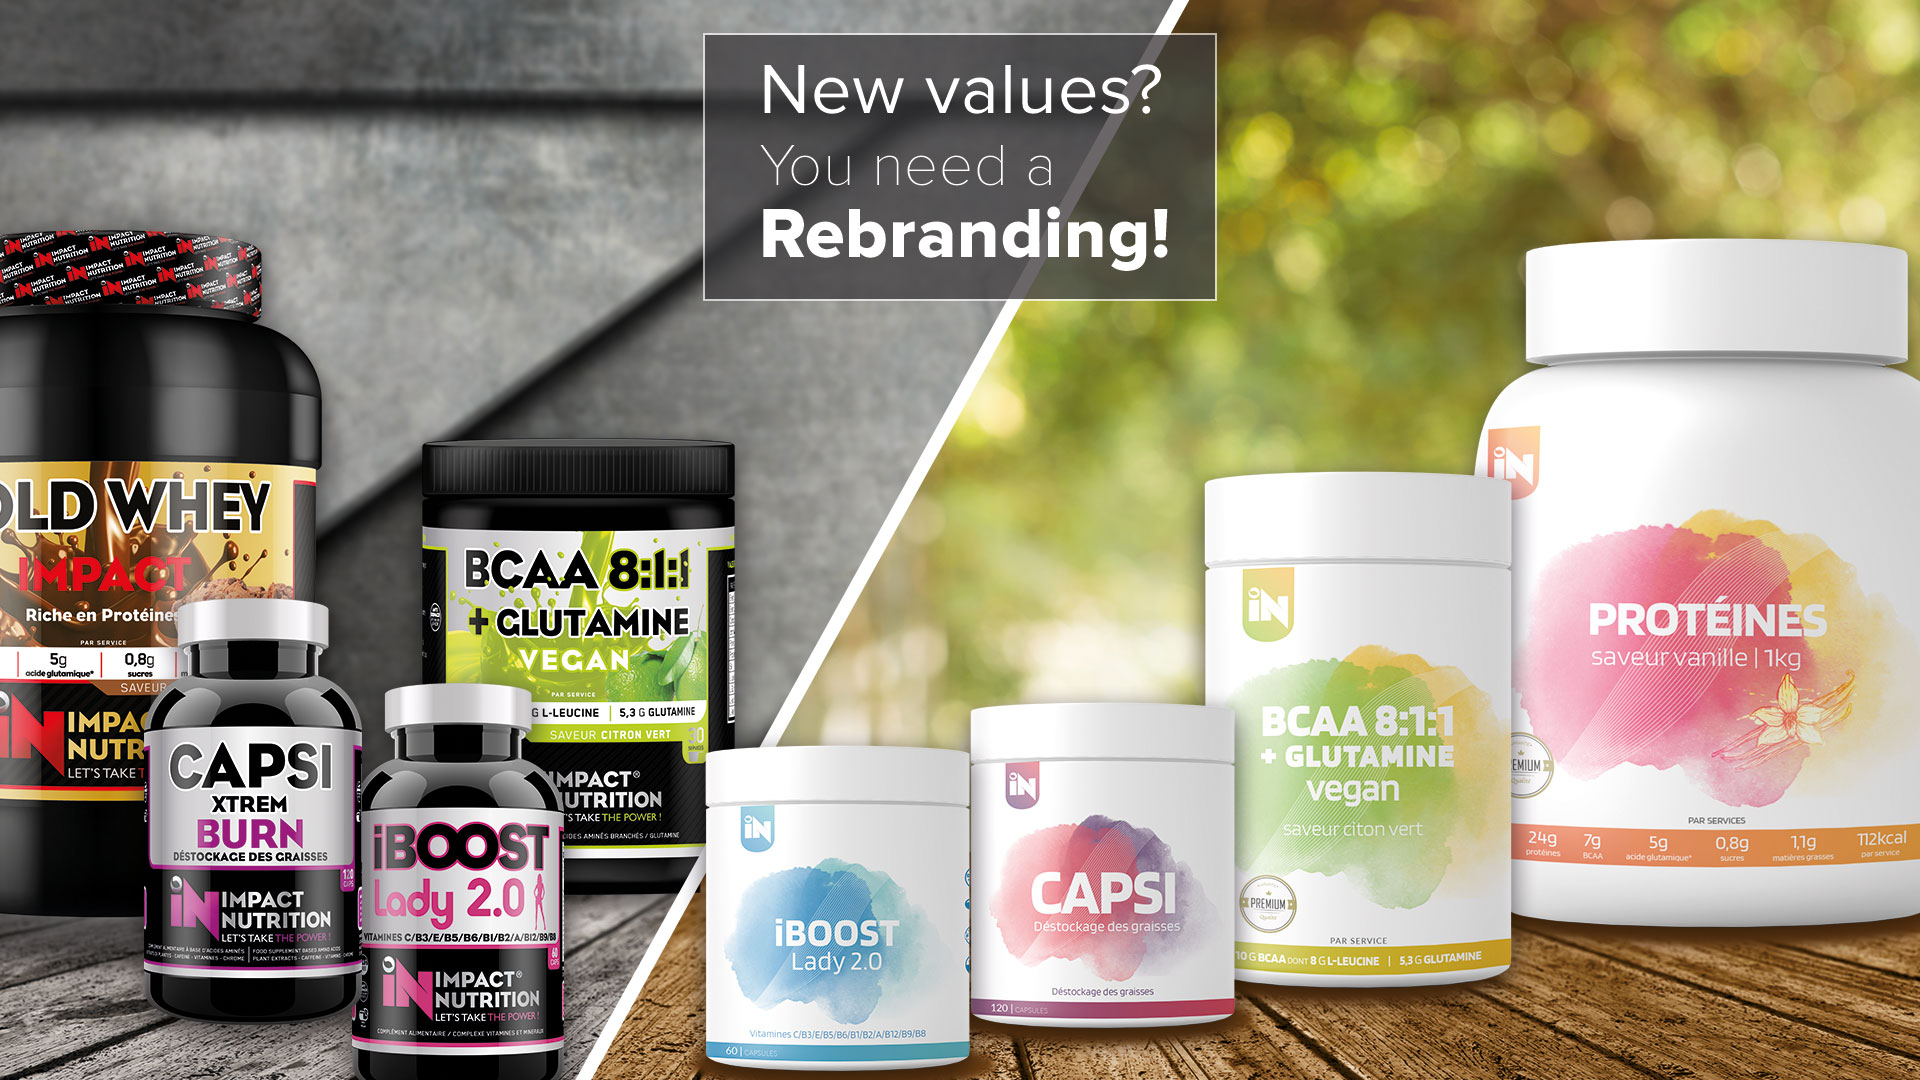 New values ? You need a rebranding.